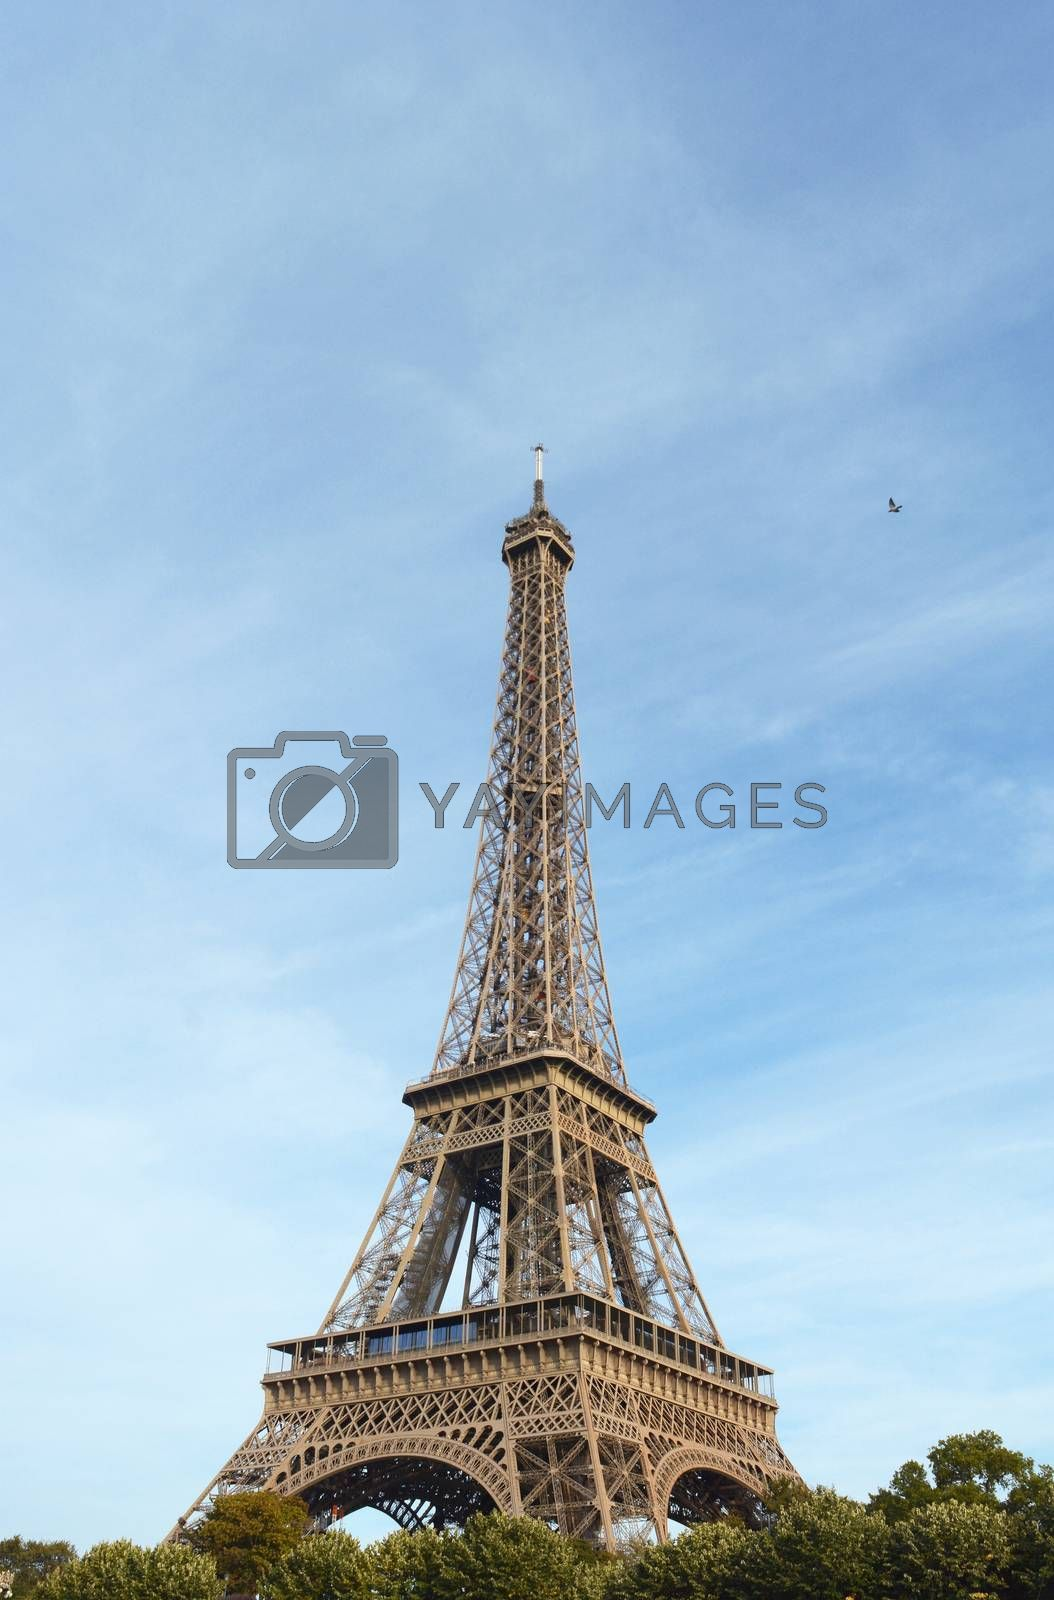 Eiffel Tower landmark stands 324 metres high on the banks of the Seine in Paris, France